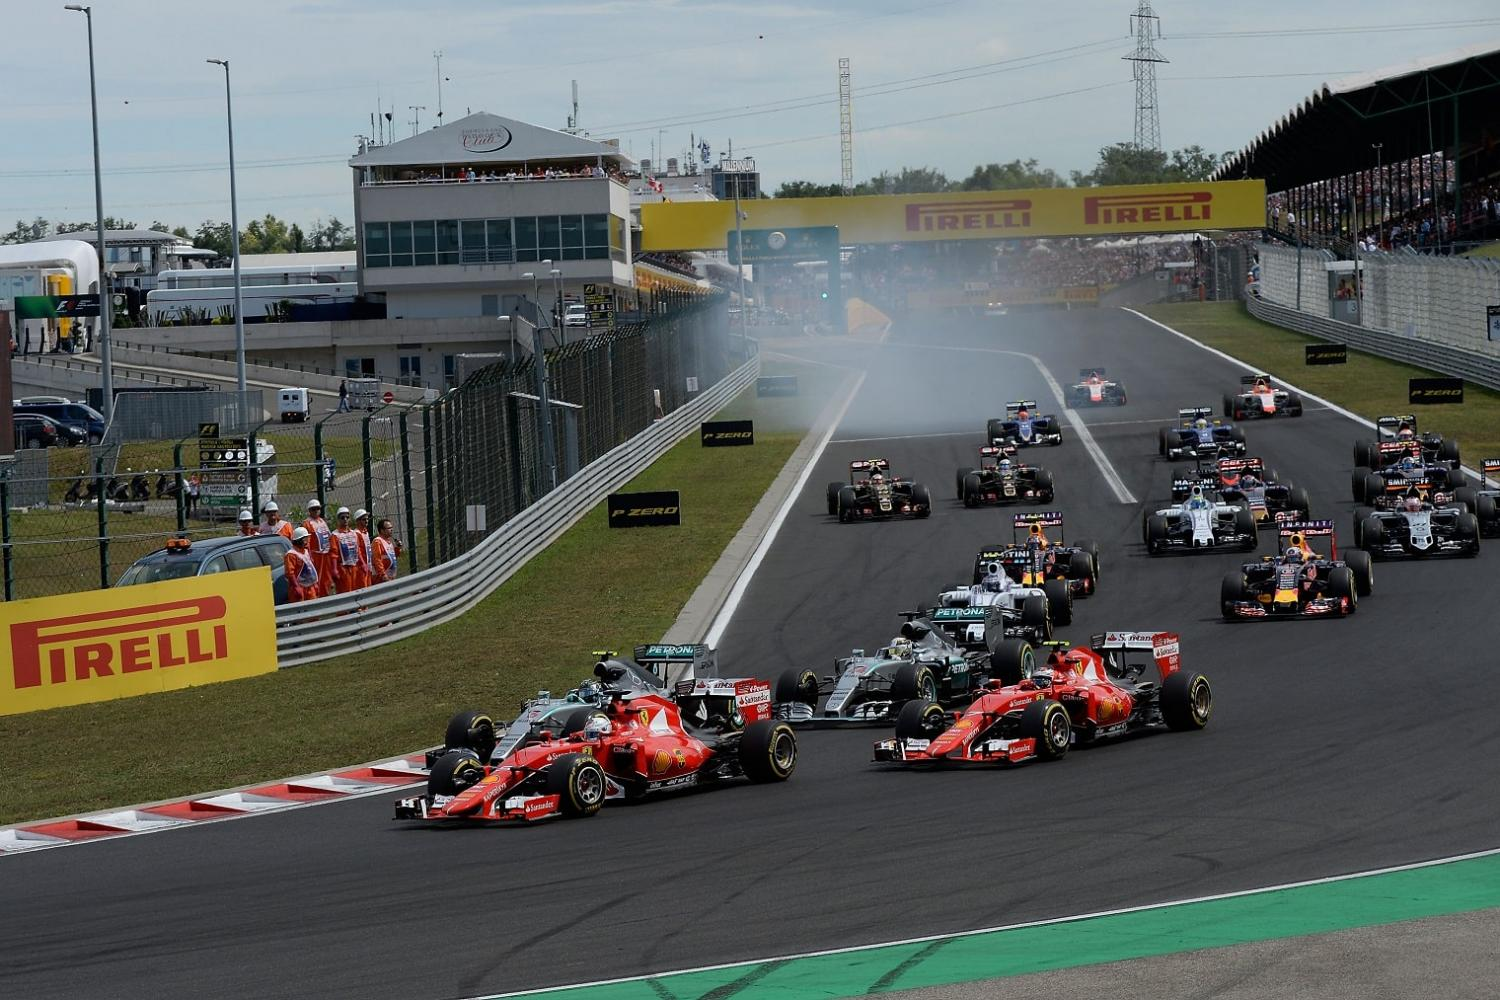 Hungarian Grand Prix ticket packages